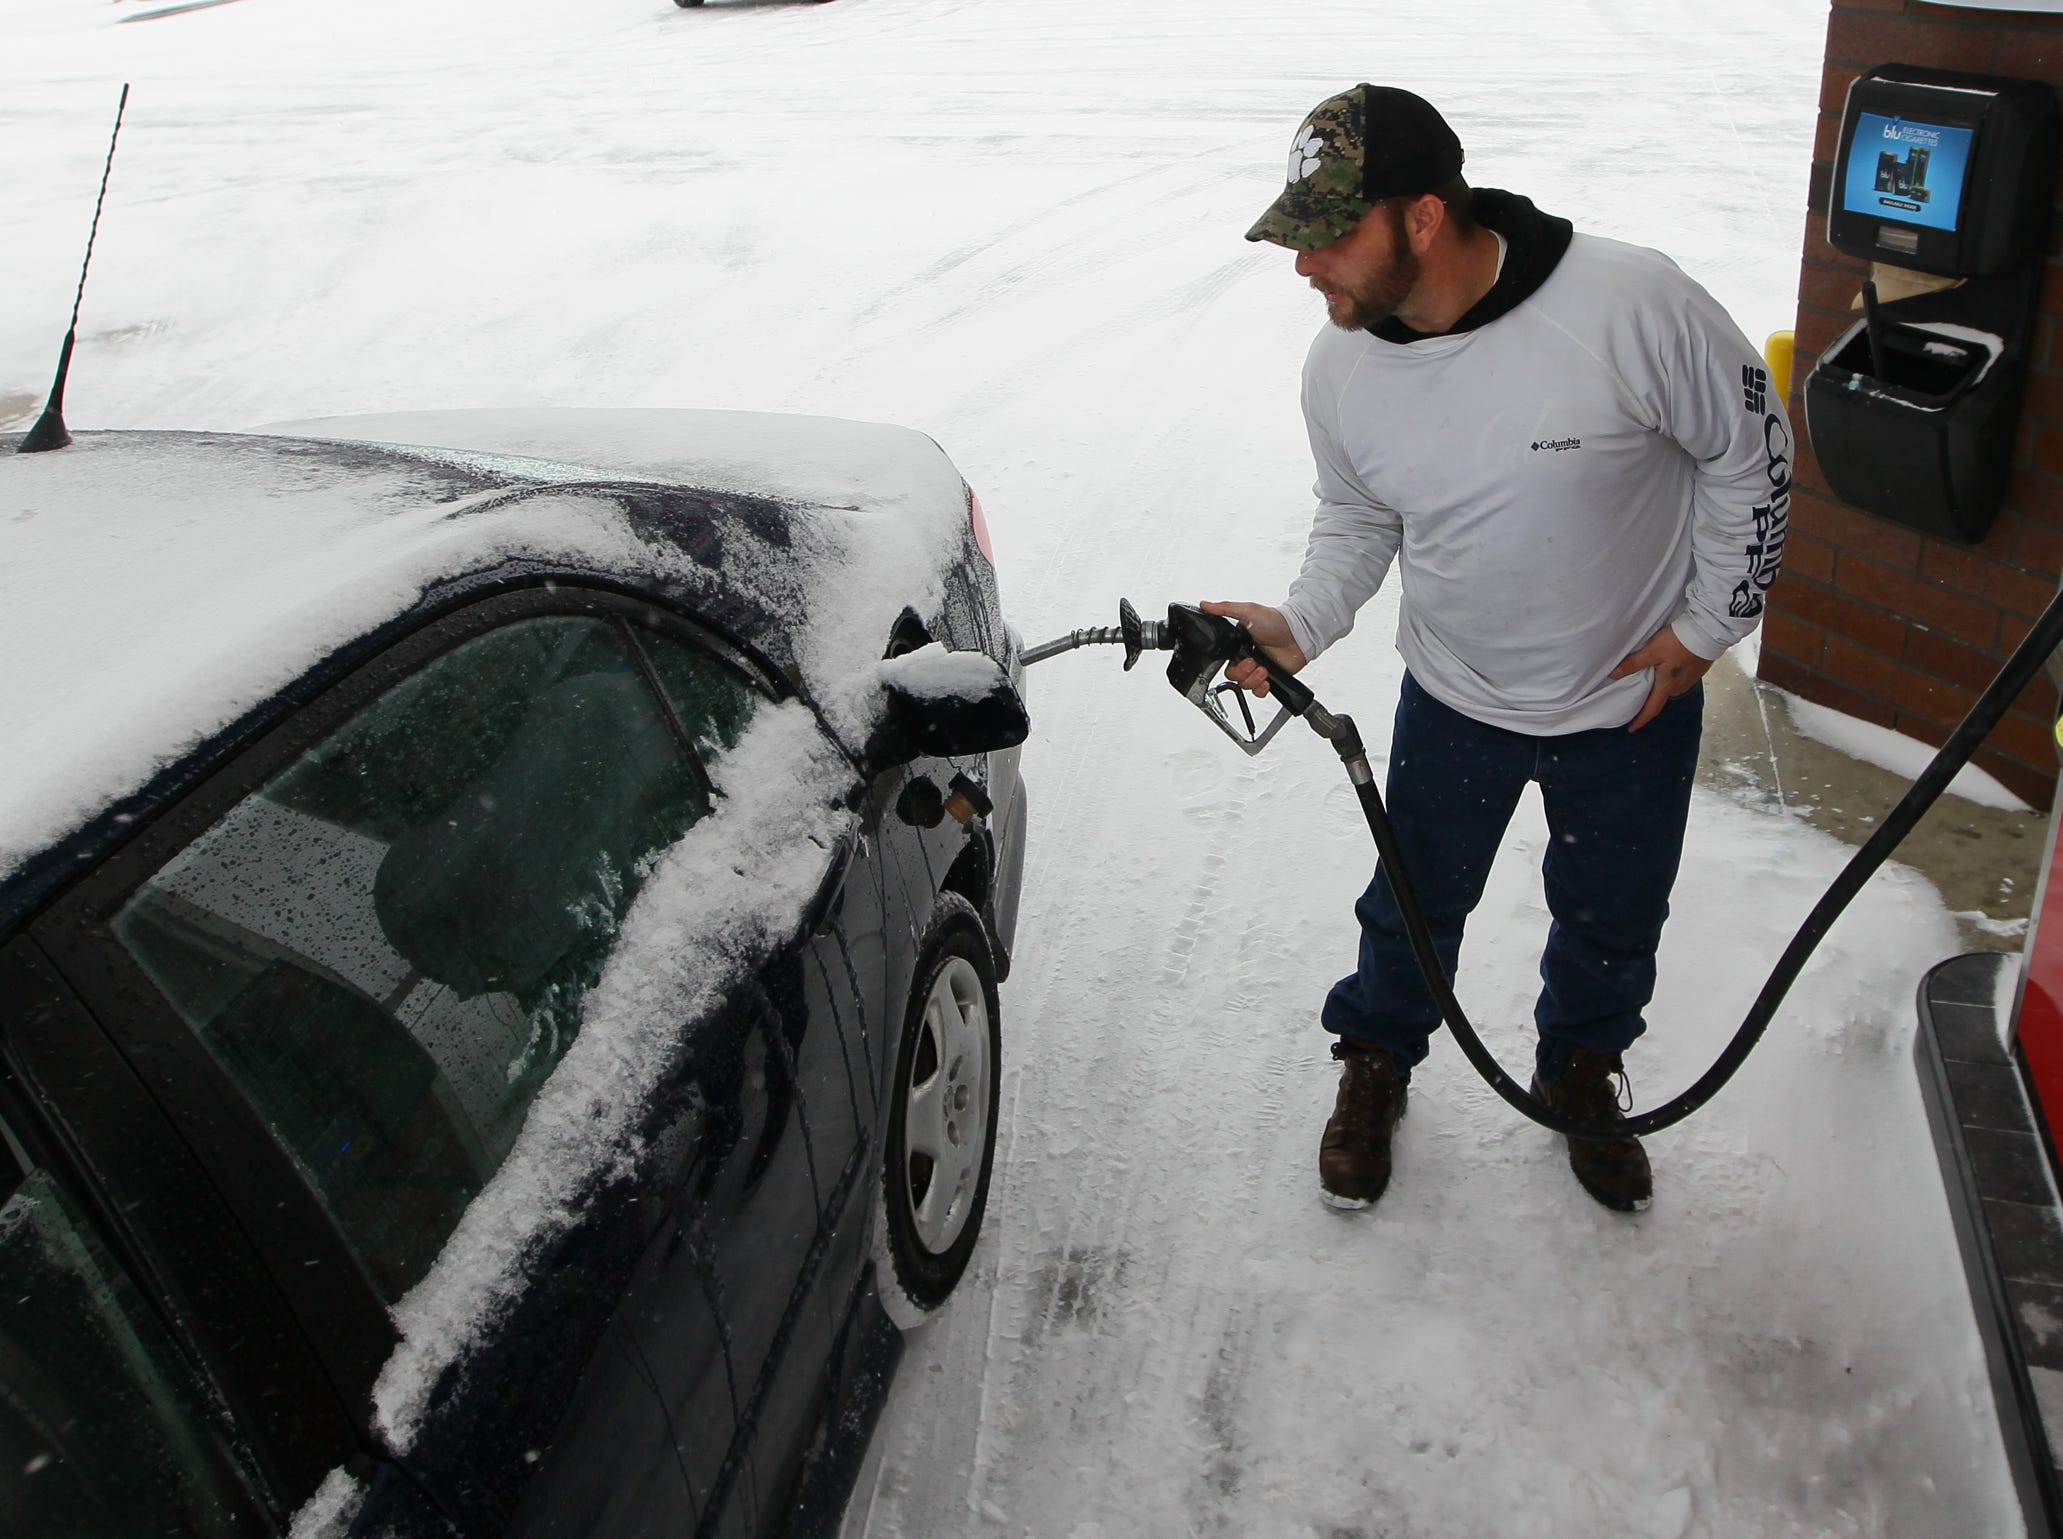 Brandon Eskew of Anderson puts gas in his car at the QT on S.C. 28 Bypass in Anderson during the first snow of 2014.